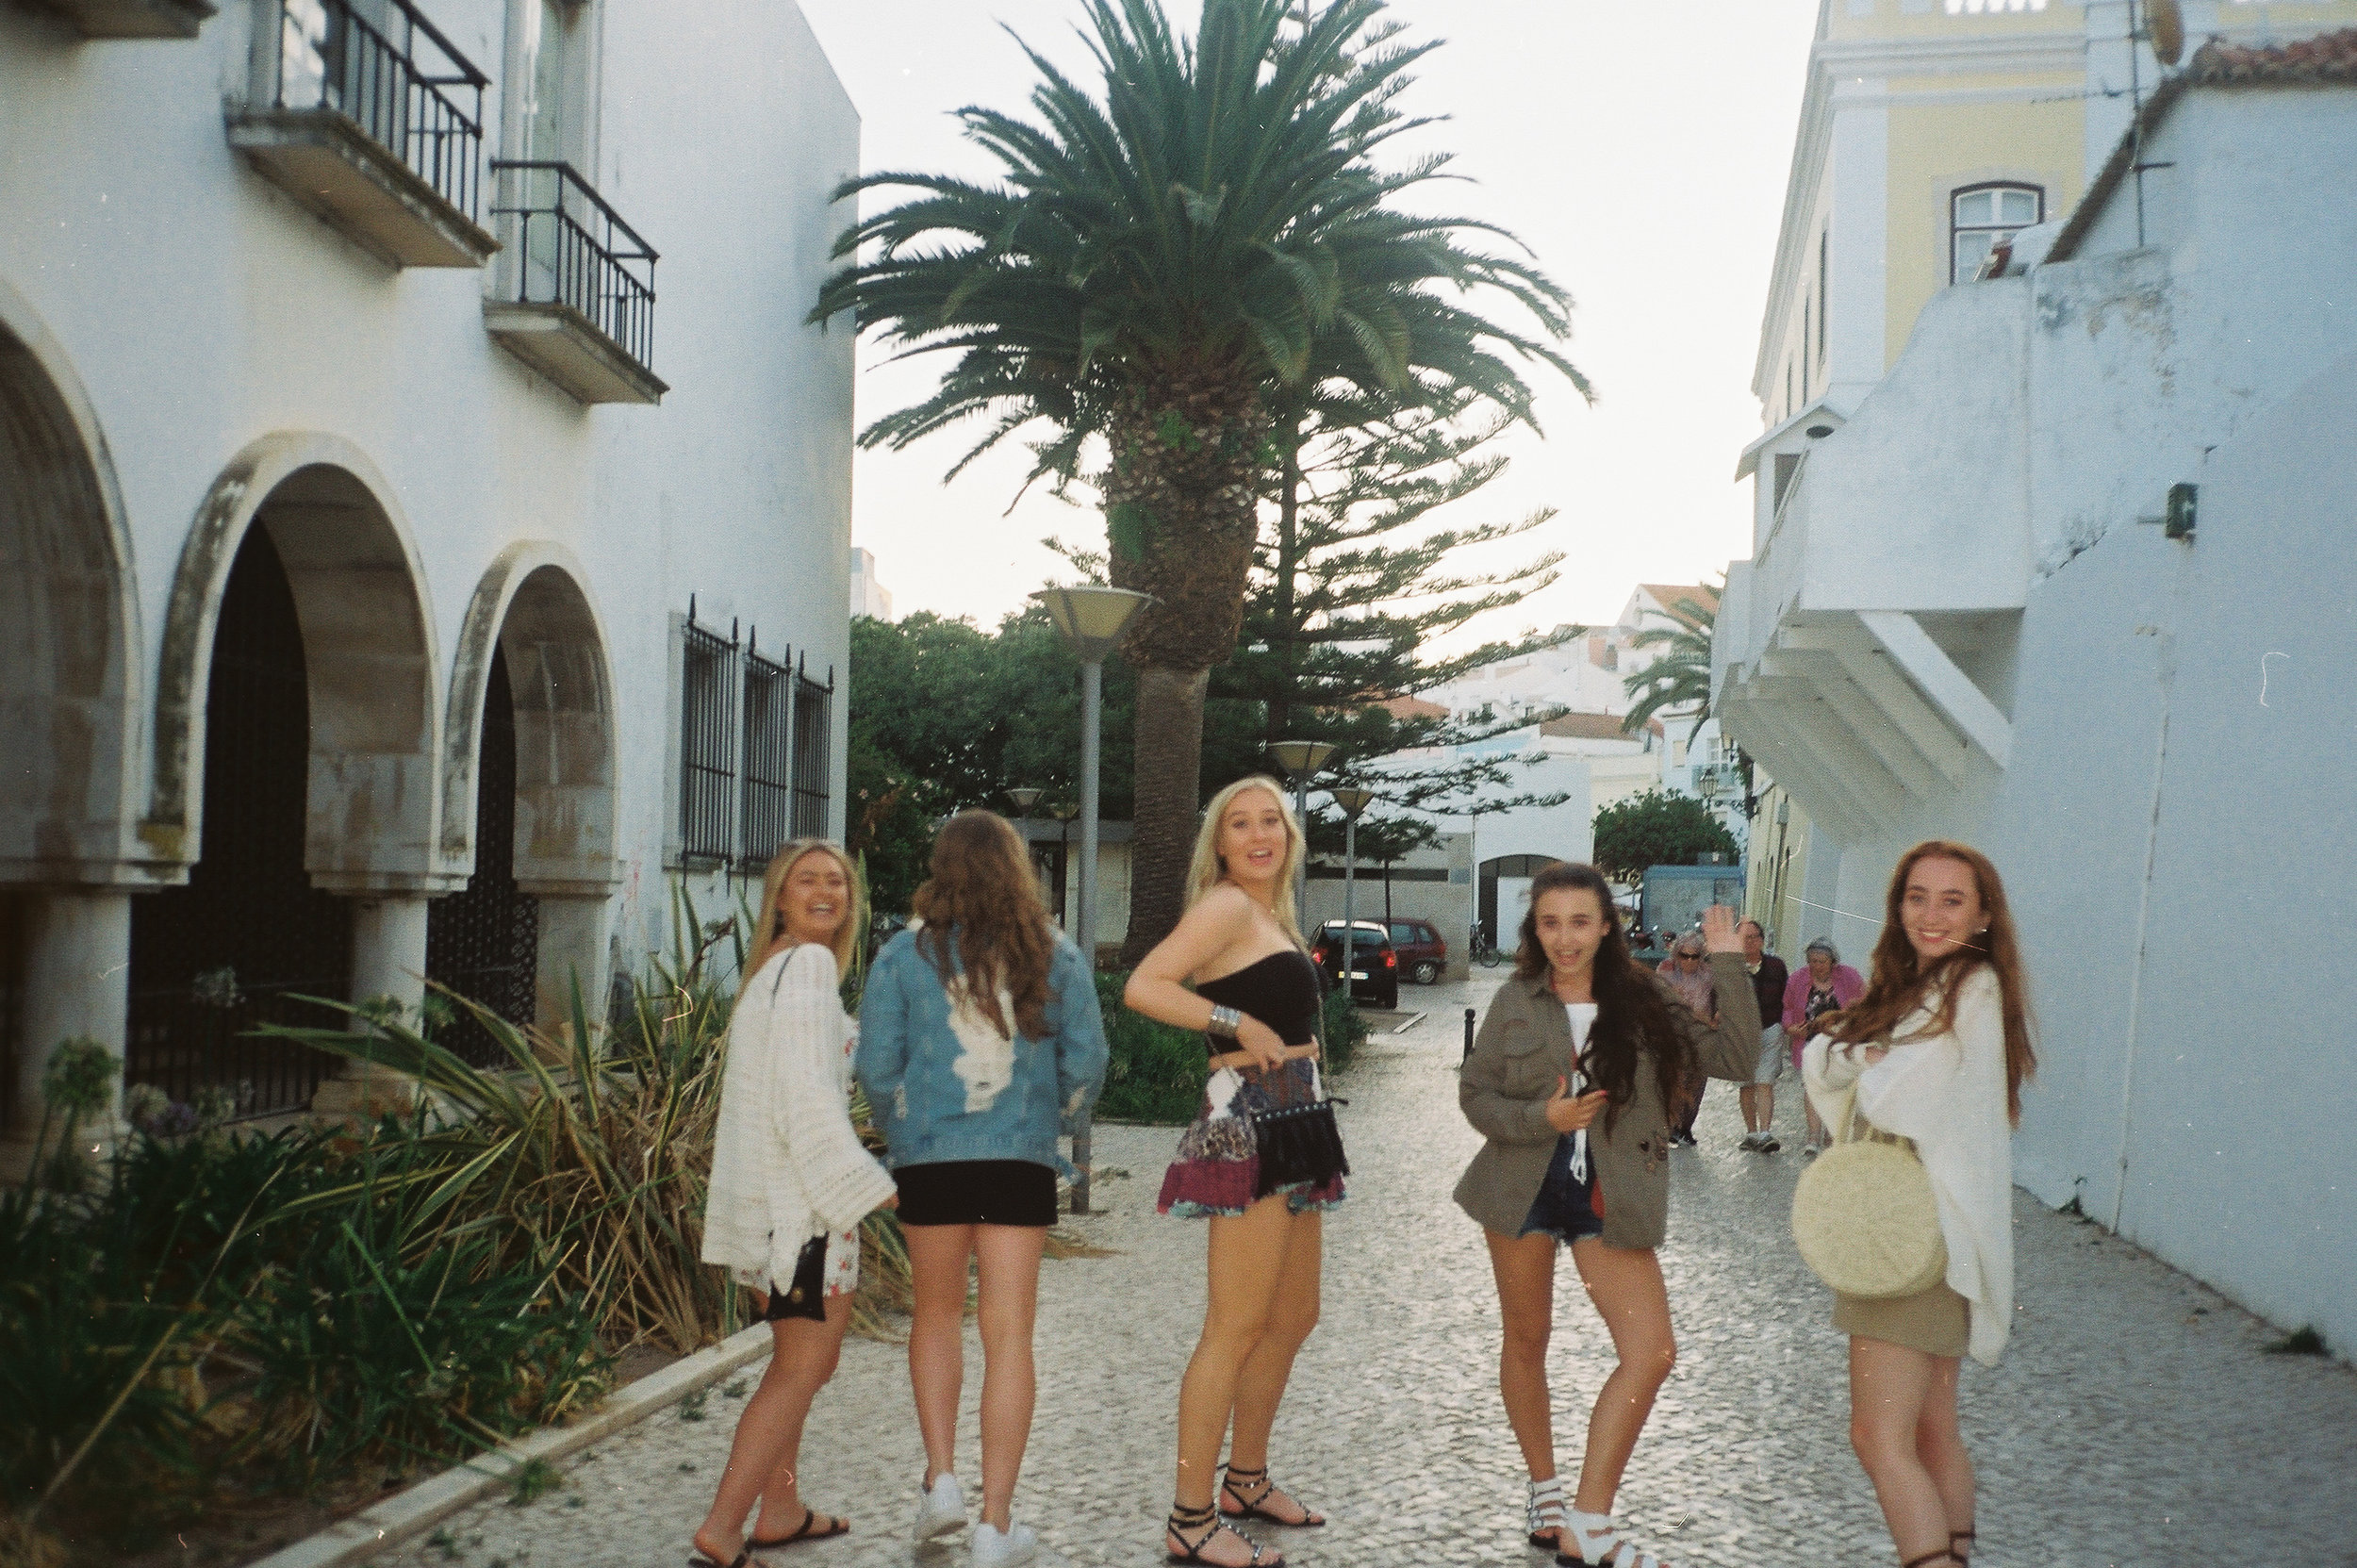 a-girls-trip-to-portugal-on-35mm-film31.5.jpg